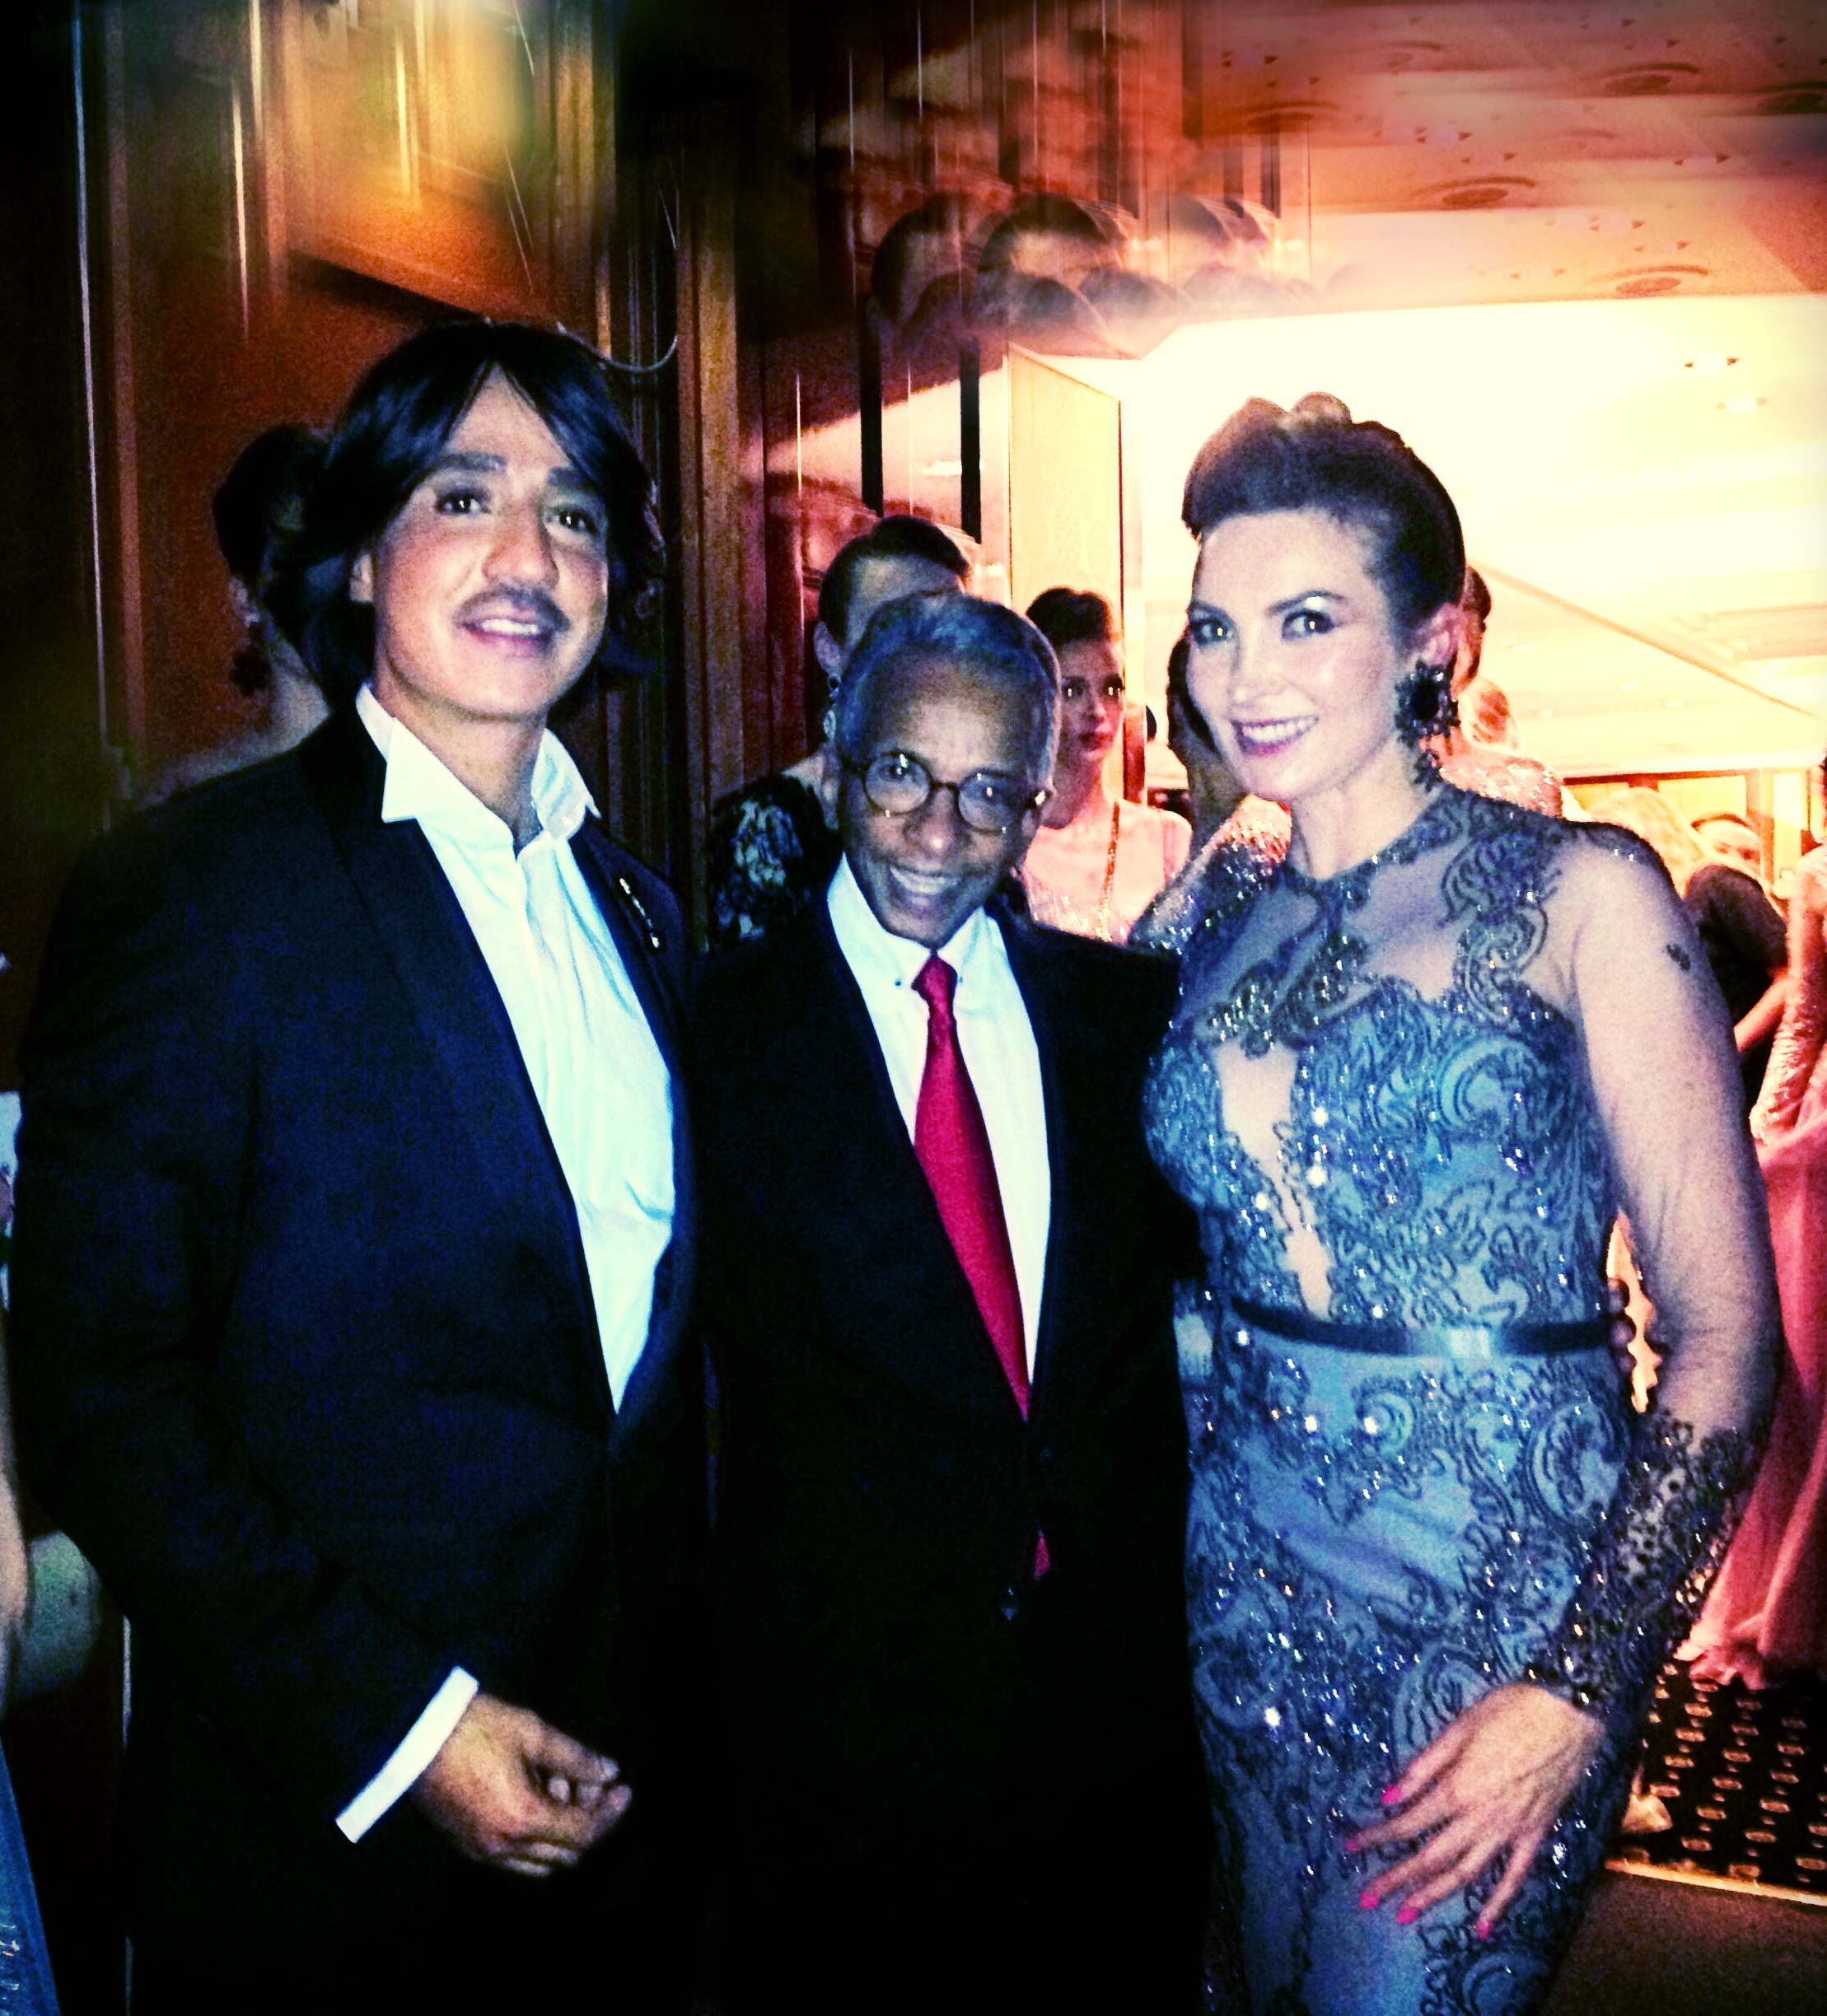 Elisabeth Visoanska with Hany El Behairy and Mohamed Al Sagheer